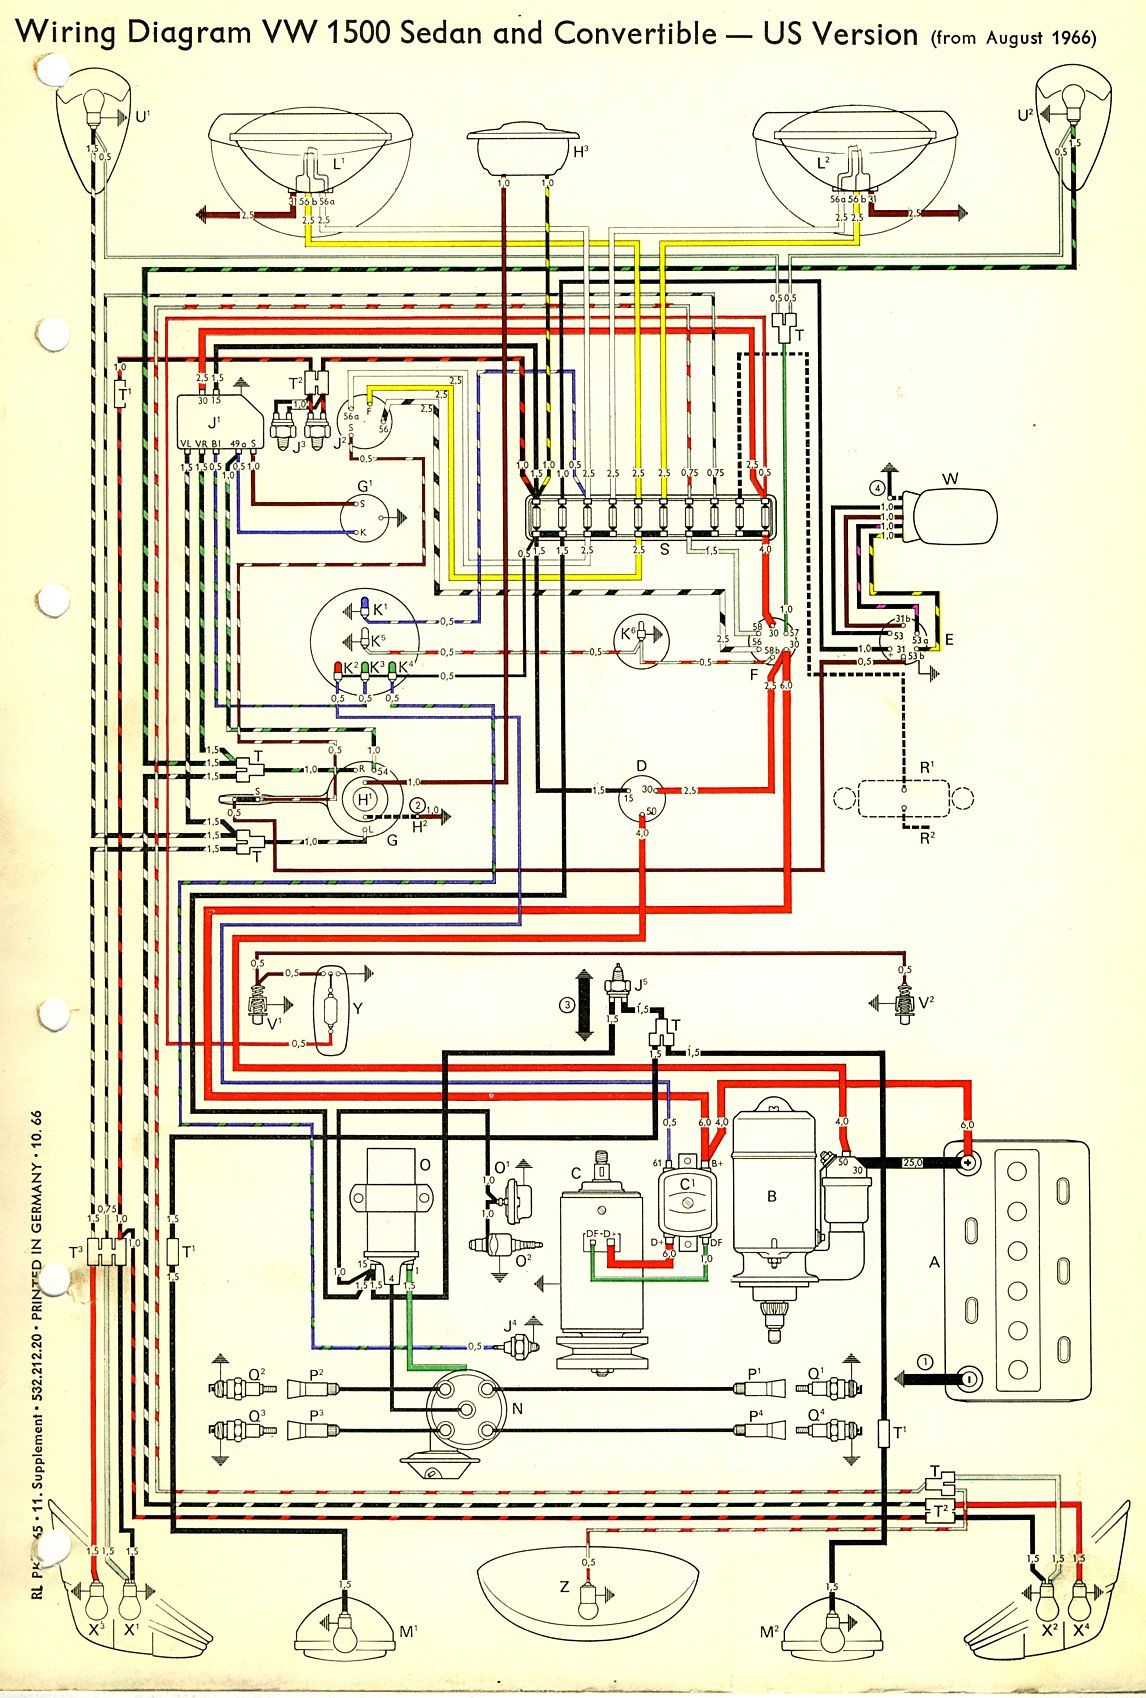 66 Vw Wiring Diagram 1300 - DIY Wiring Diagrams •  Beetle Wiring Diagram Lights on 1974 vw engine diagram, 74 beetle parts, 74 beetle solenoid, vw beetle diagram, 74 beetle seats, 74 beetle voltage regulator, 74 beetle exhaust, 74 beetle engine, 74 vw bug vacuum diagram, 74 beetle battery, 73 vw bug signal diagram,